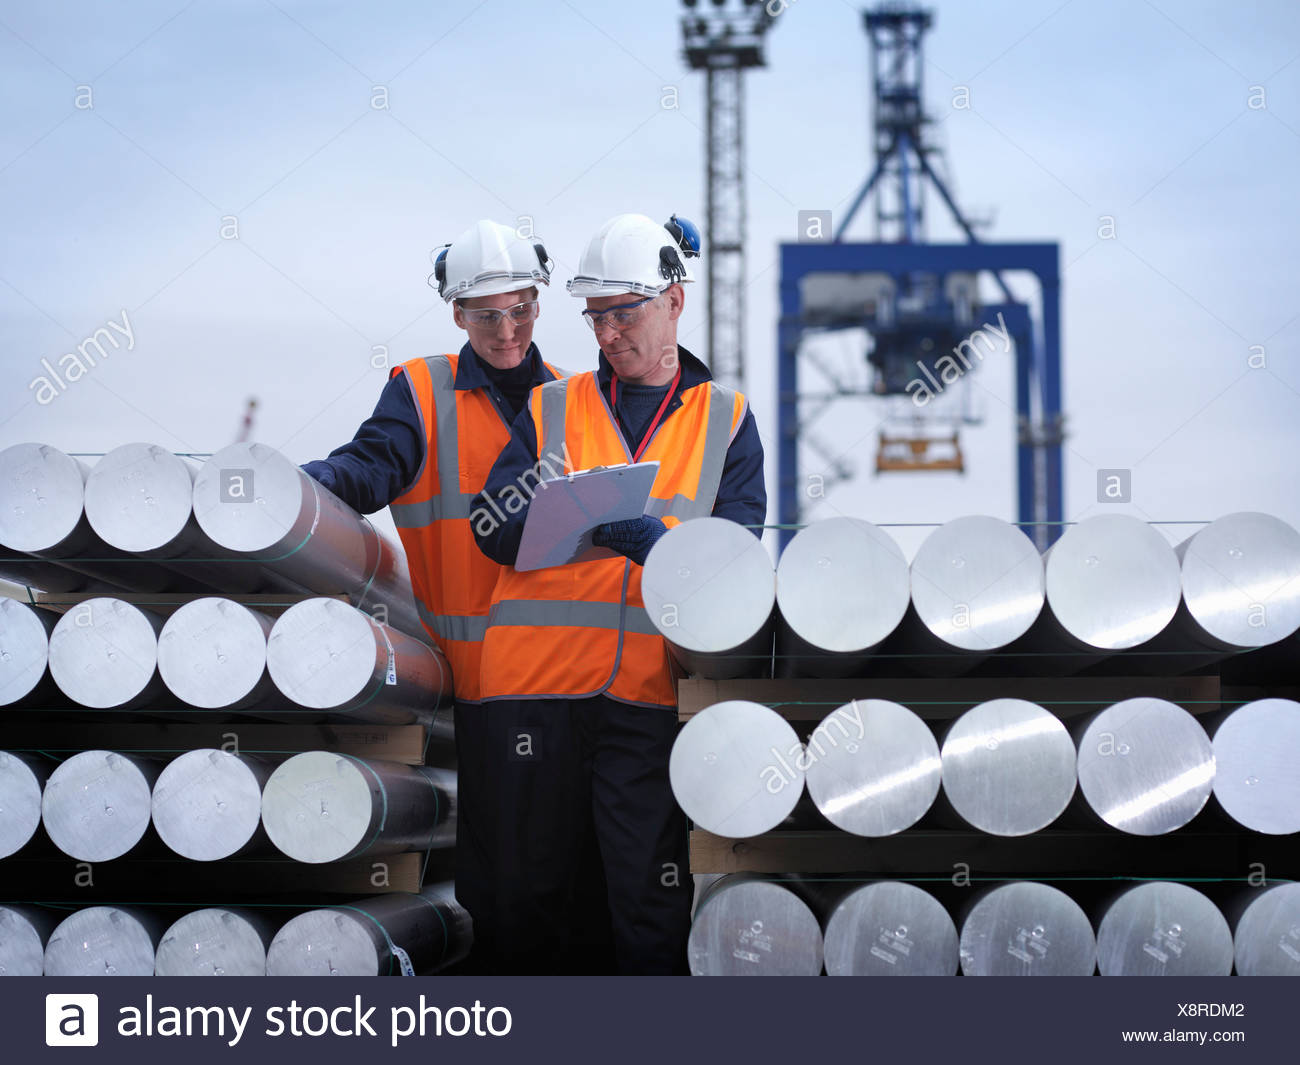 Port Workers Discussing Cargo - Stock Image